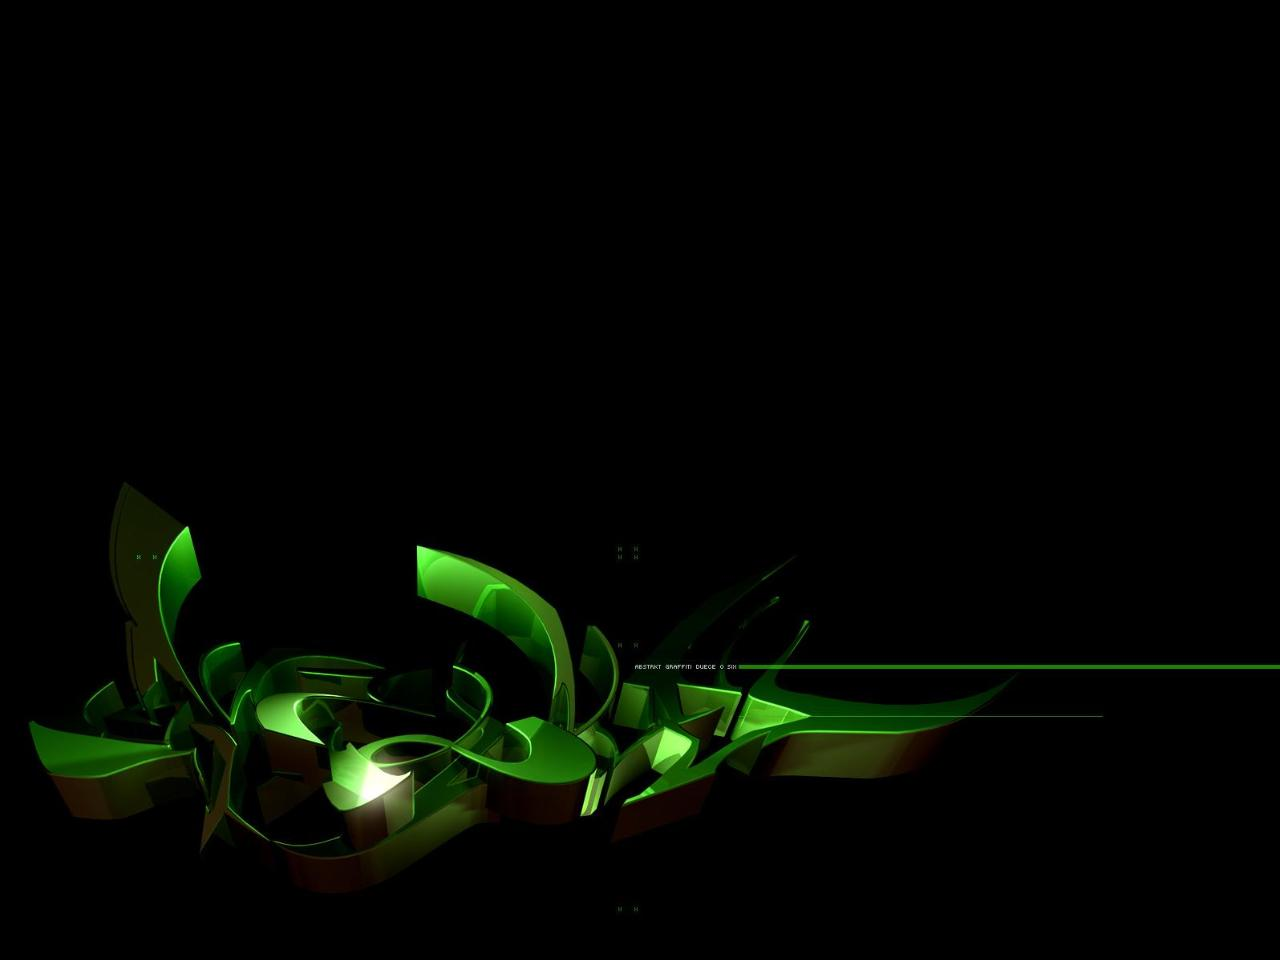 Bright Green Abstract Black Background Wallpaper